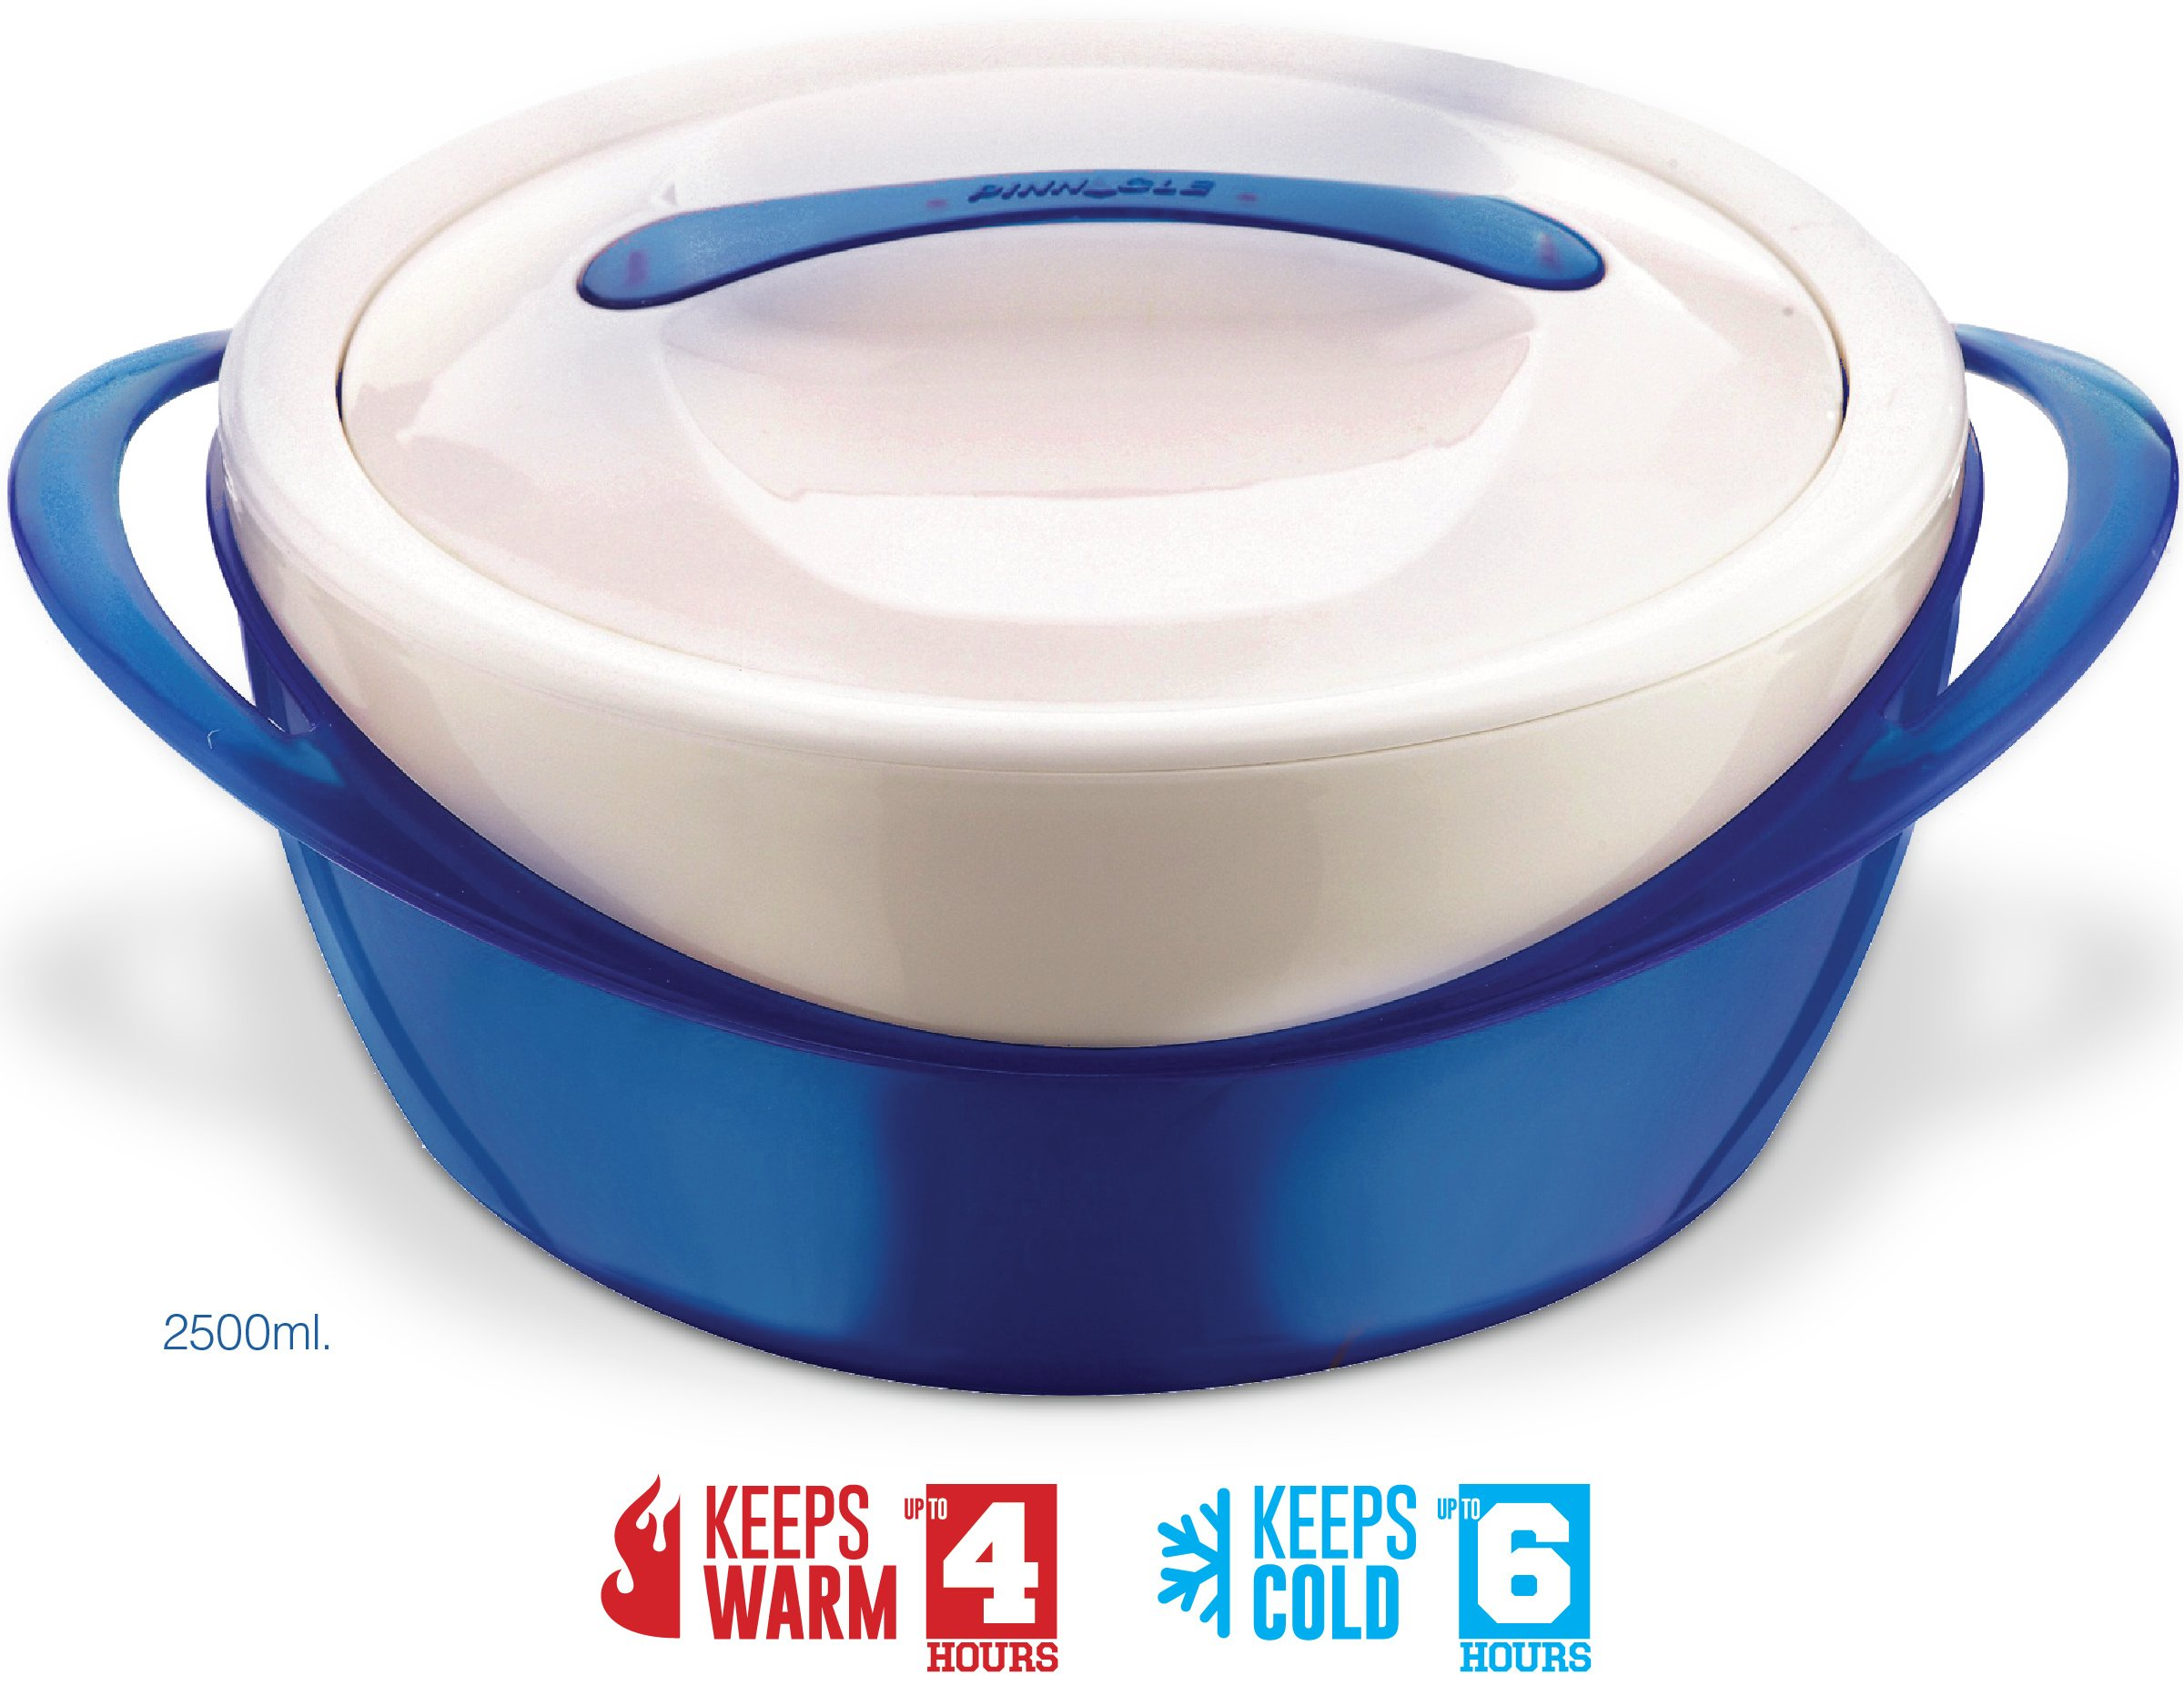 Pinnacle Casserole Dish - Large Soup and Salad Bowl - Insulated Serving Bowl With Lid - Blue